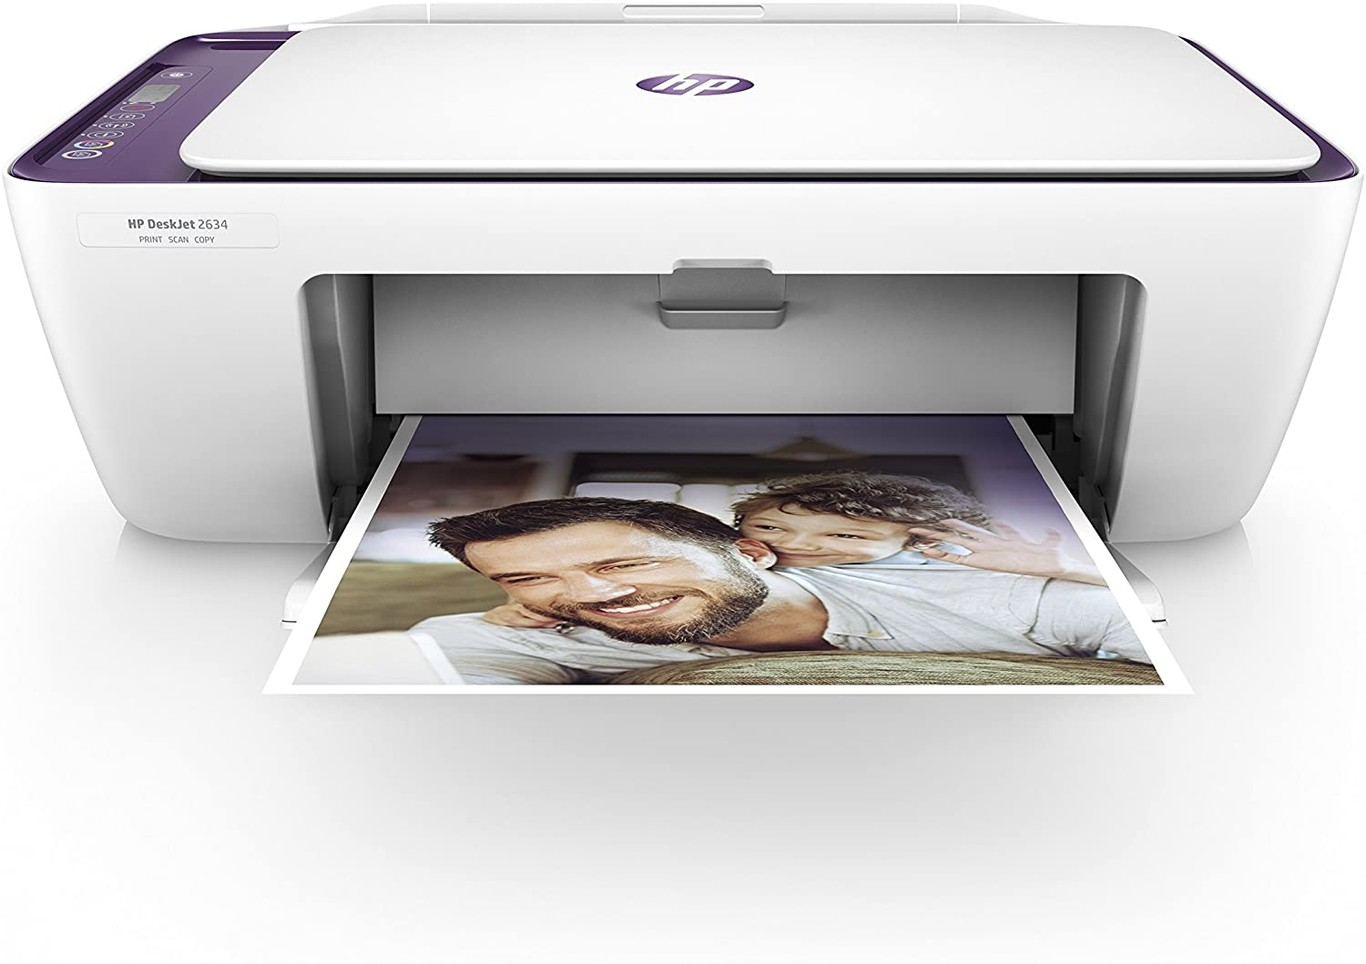 23 Best Printers (2020): Buying Guide With Tips 4